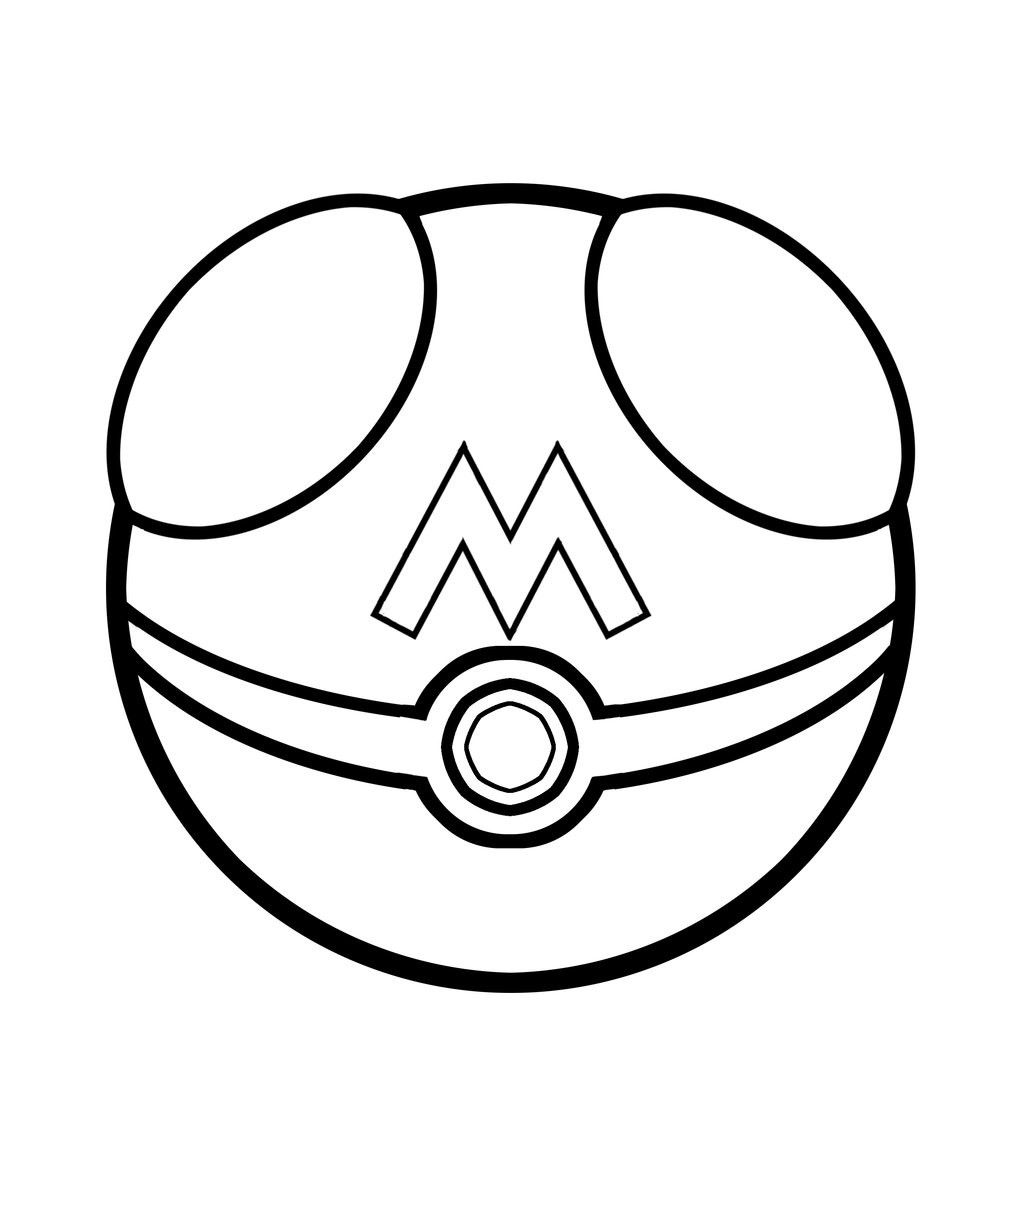 Pokemon ball coloring page from the thousand pictures online with regards to pokemon ball coloring page we all picks the best selections along with